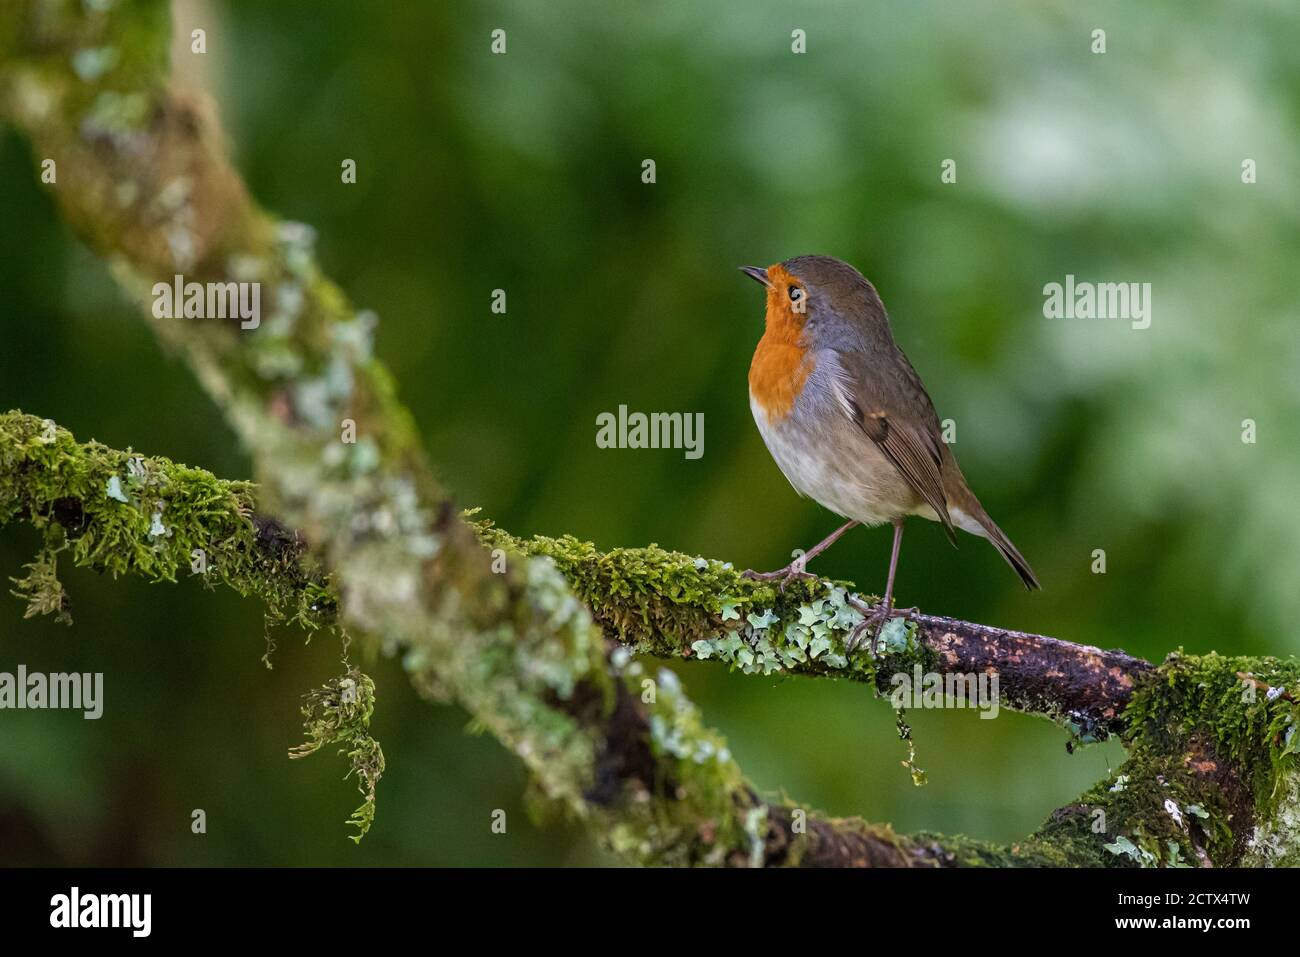 A robin, erithacus rubecula, sitting perched on a branch in a garden bush in Scotland Stock Photo